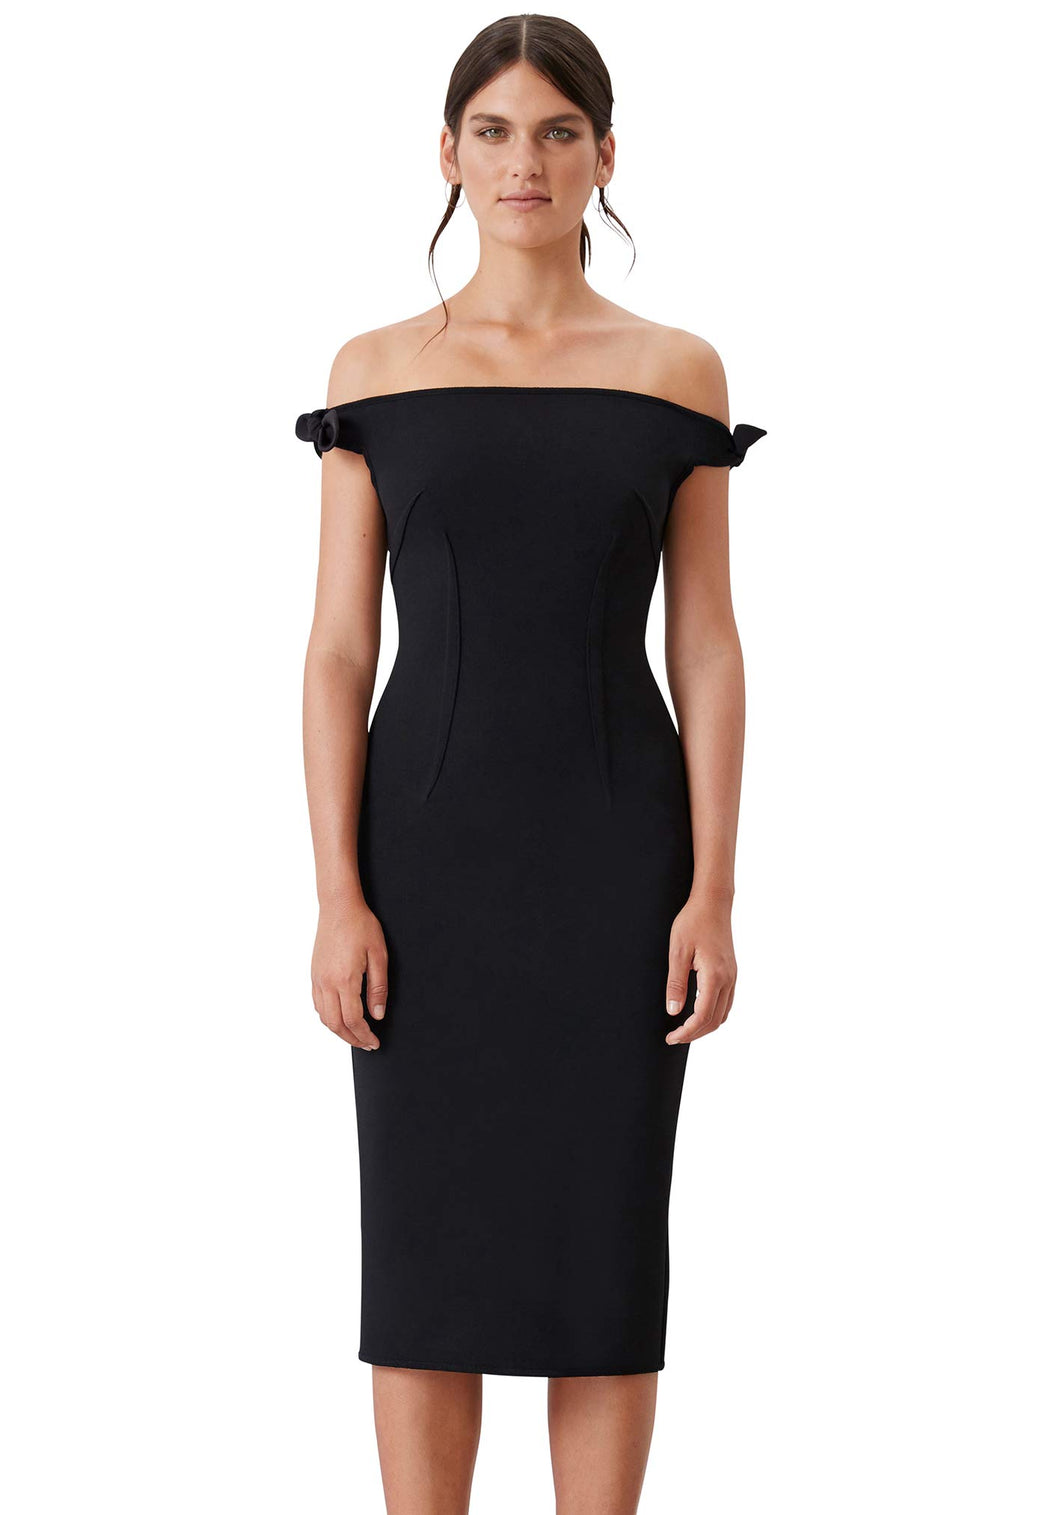 BARE SHOULDER TIE DRESS - Black